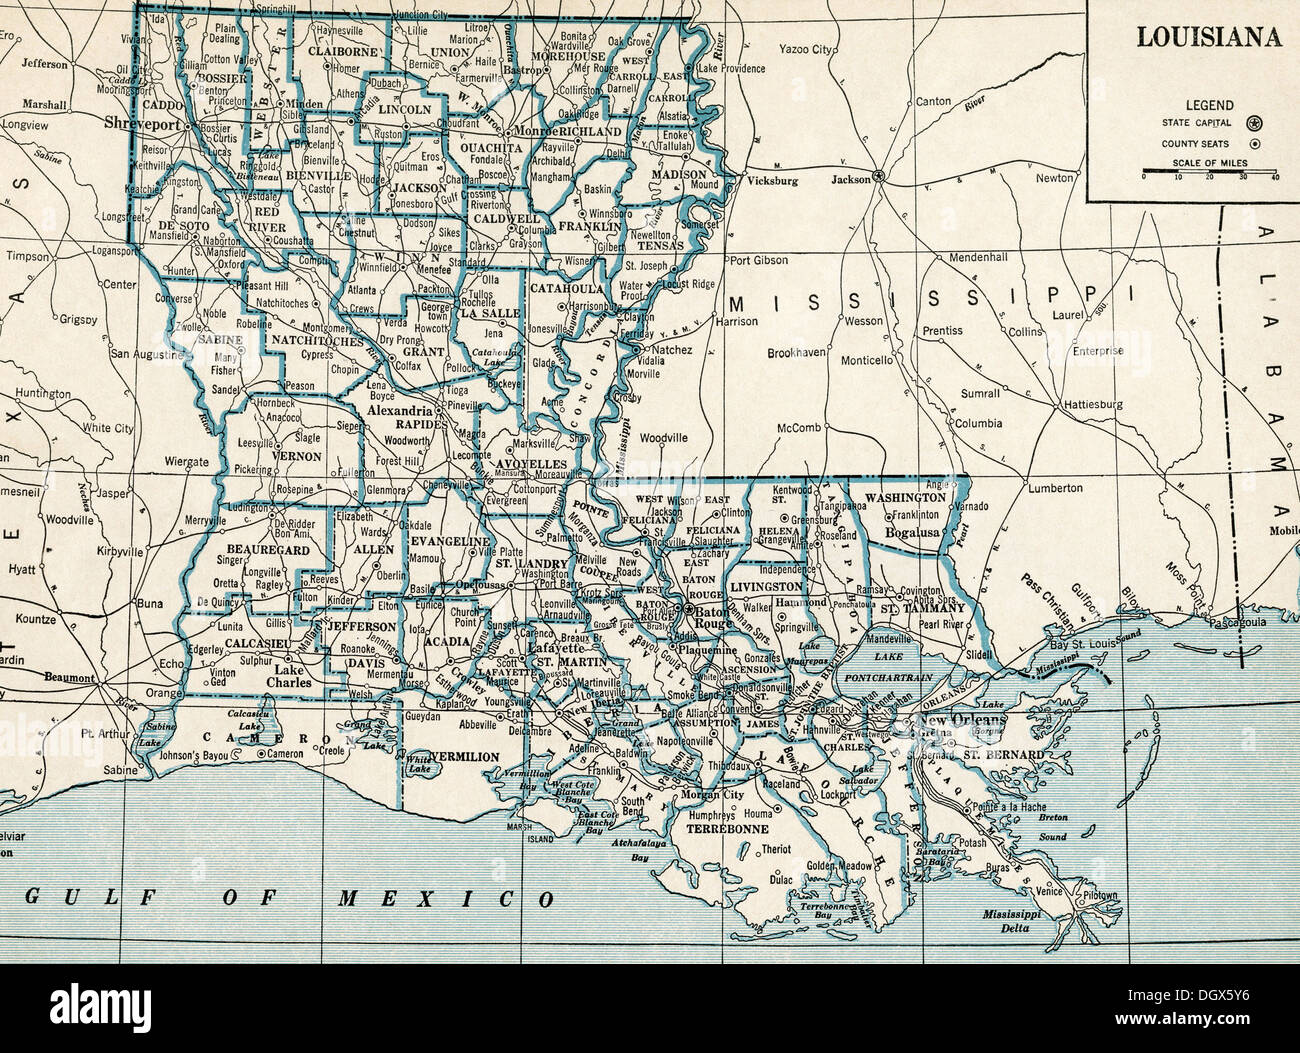 Old Map Of Louisiana State S Stock Photo Royalty Free Image - Louisana state map